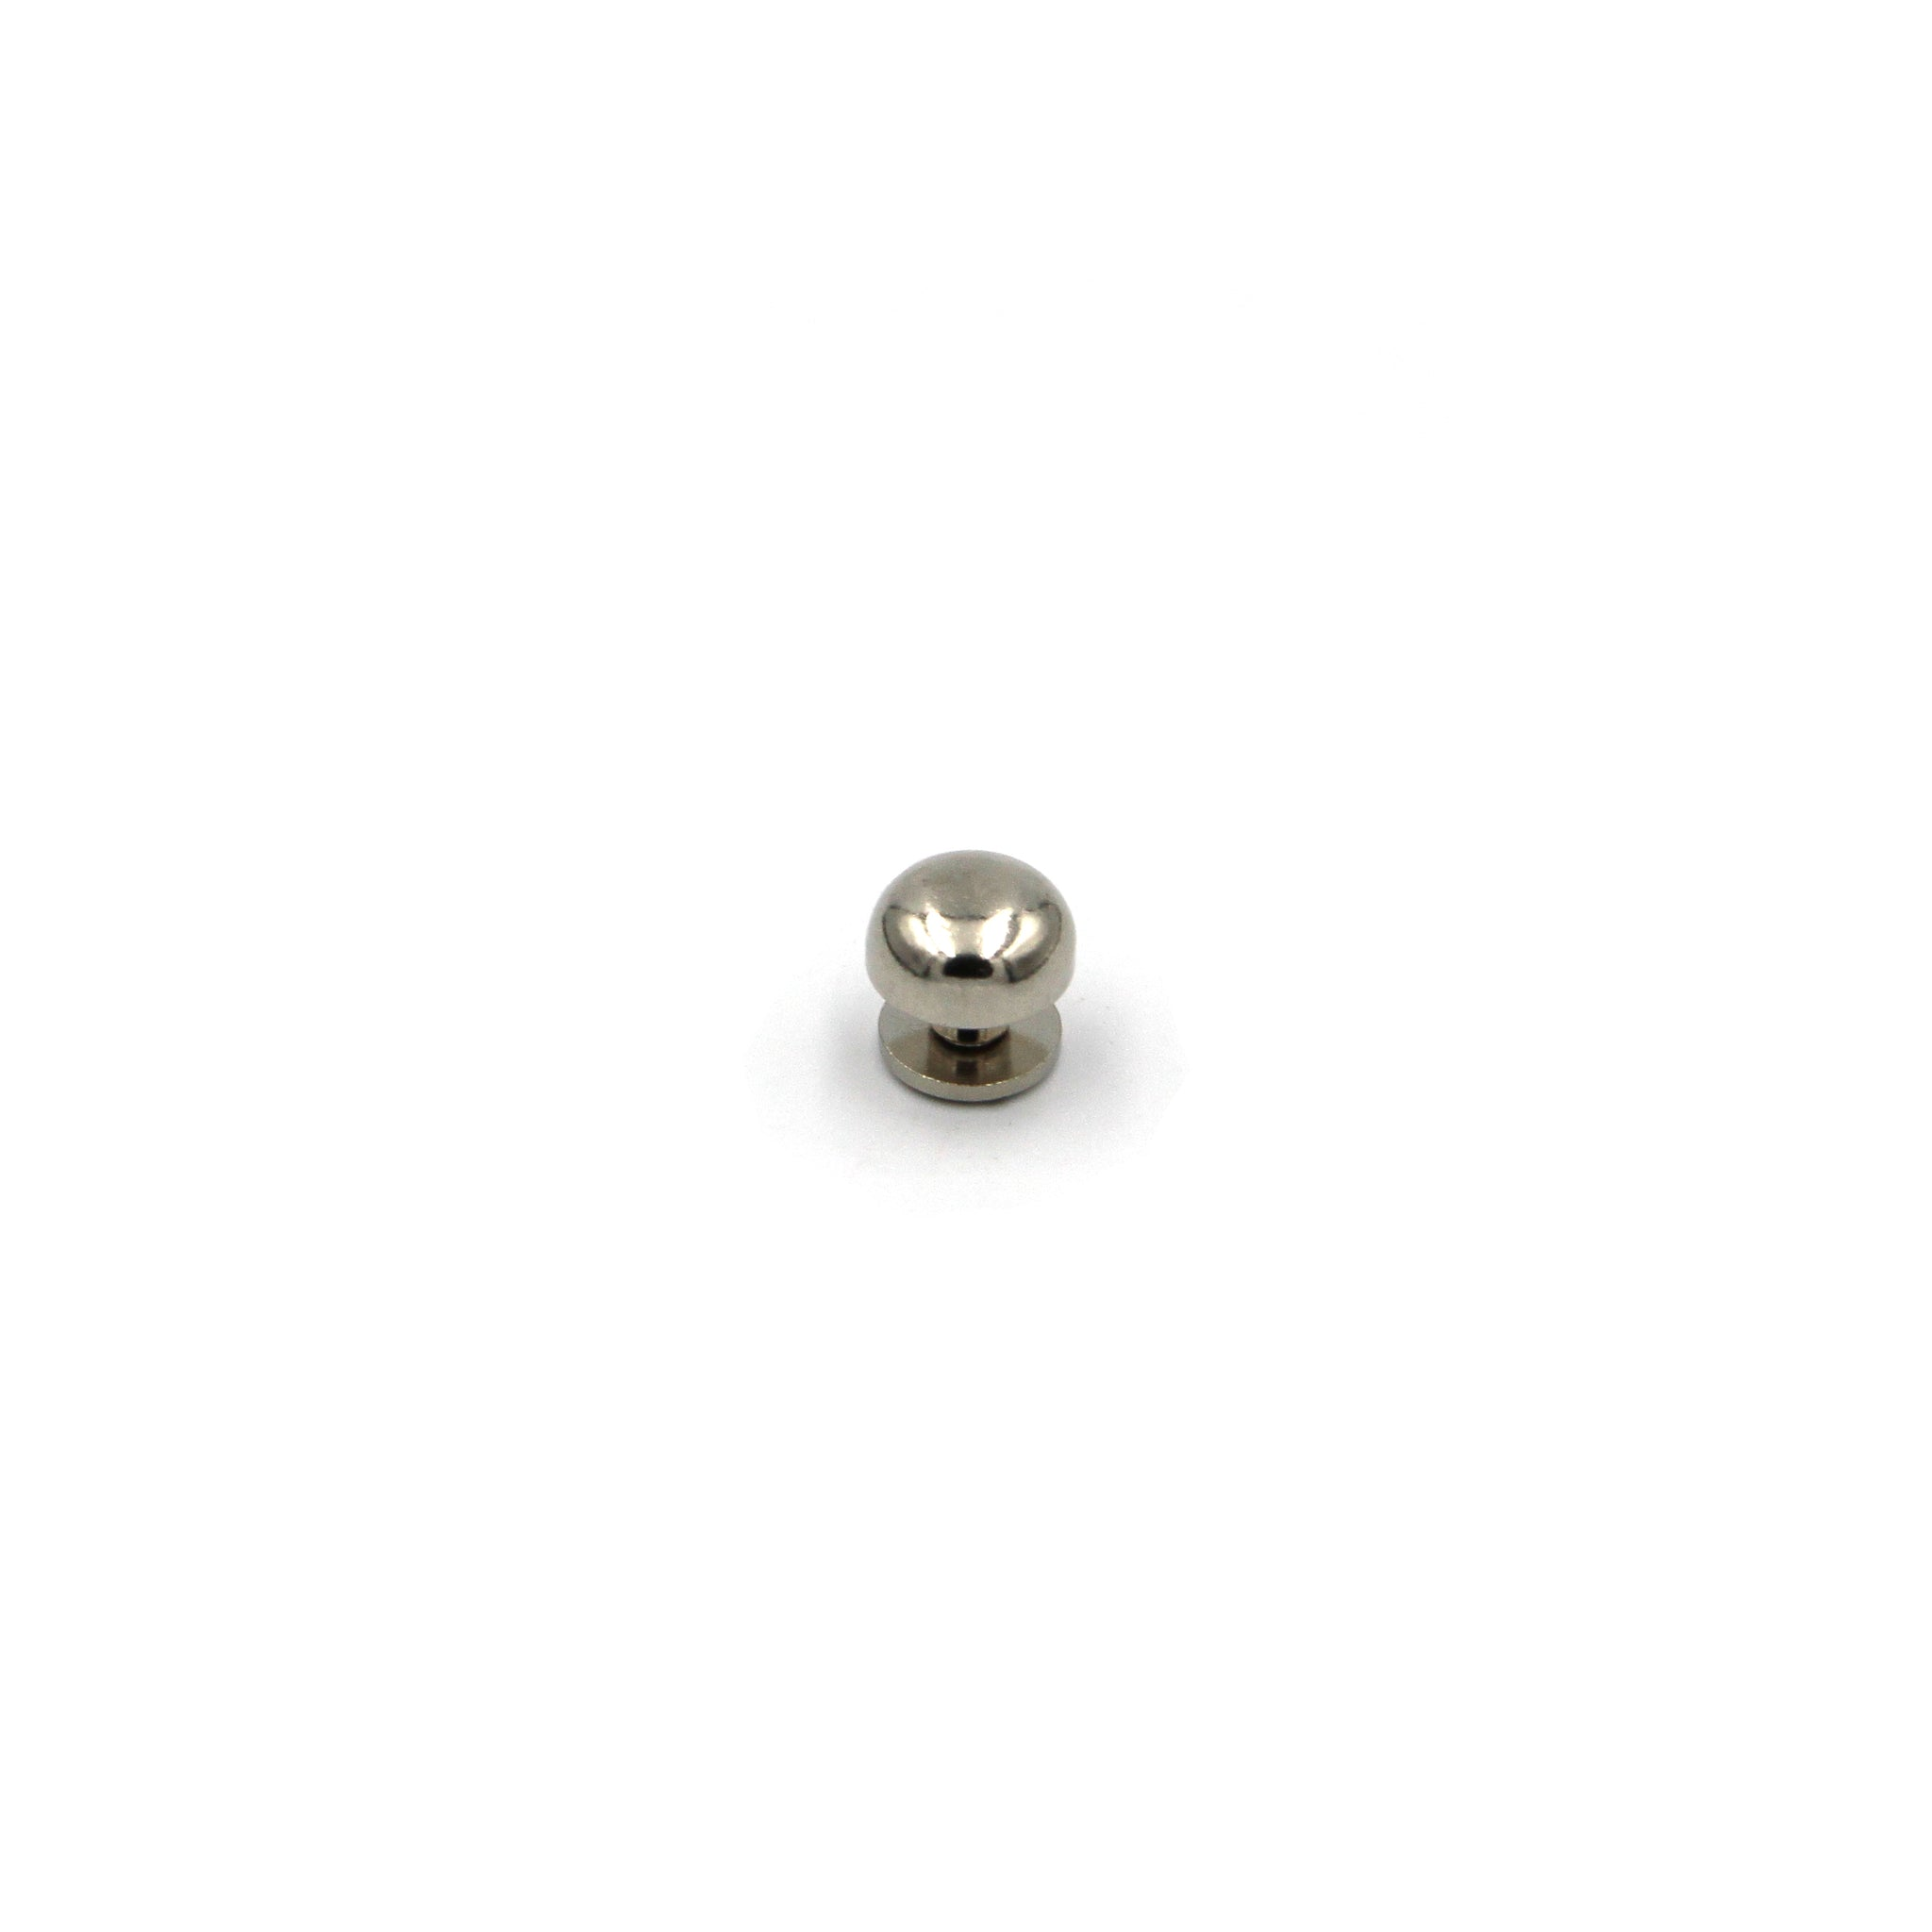 Silver Mushroom Studs Rivet 10 mm - Metal Field Shop